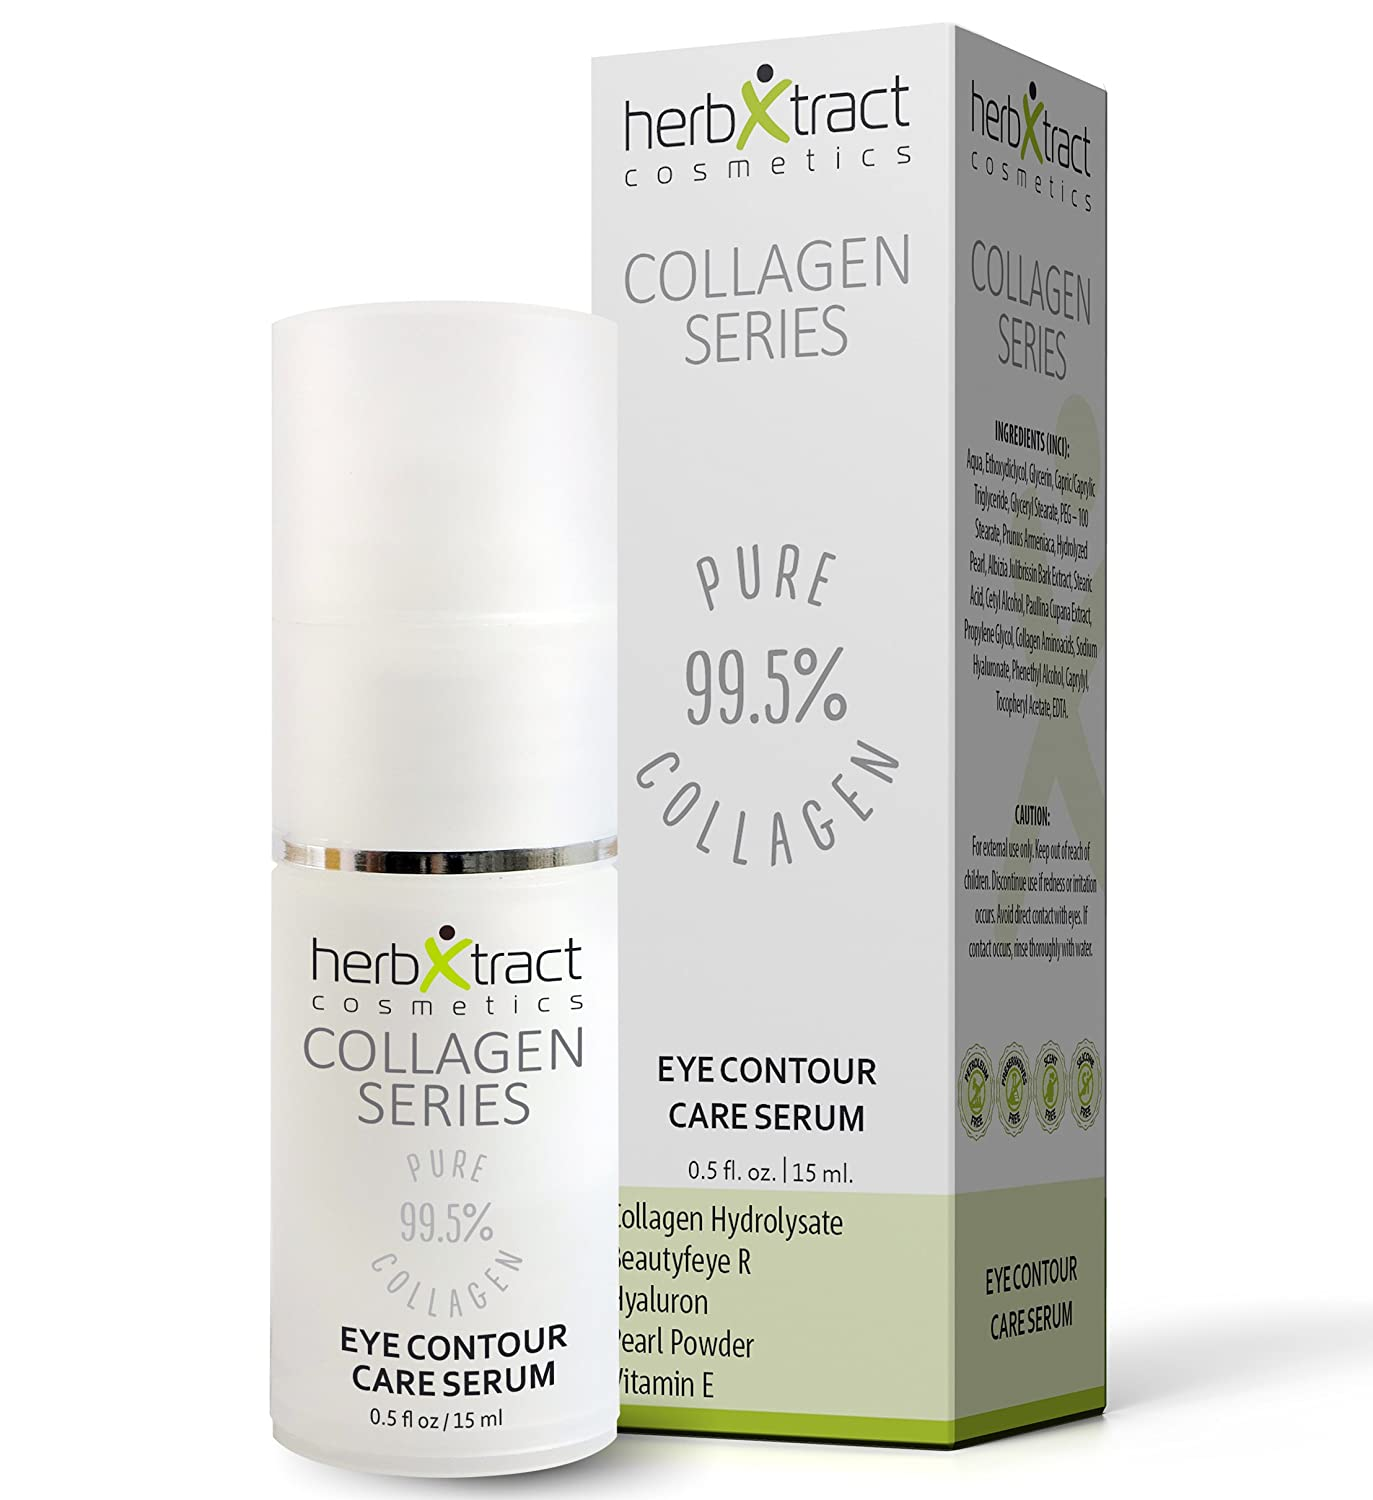 Eye Contour Care Serum for Eyelid Lift, Dark Circles, Wrinkles, Fine Lines & Bags - Anti Age Solution with Collagen, BeautyfeyeR, Pearl Powder, Hyaluronic Acid, Guarana, Vitamin E - 0.5 fl.oz HerbXtract